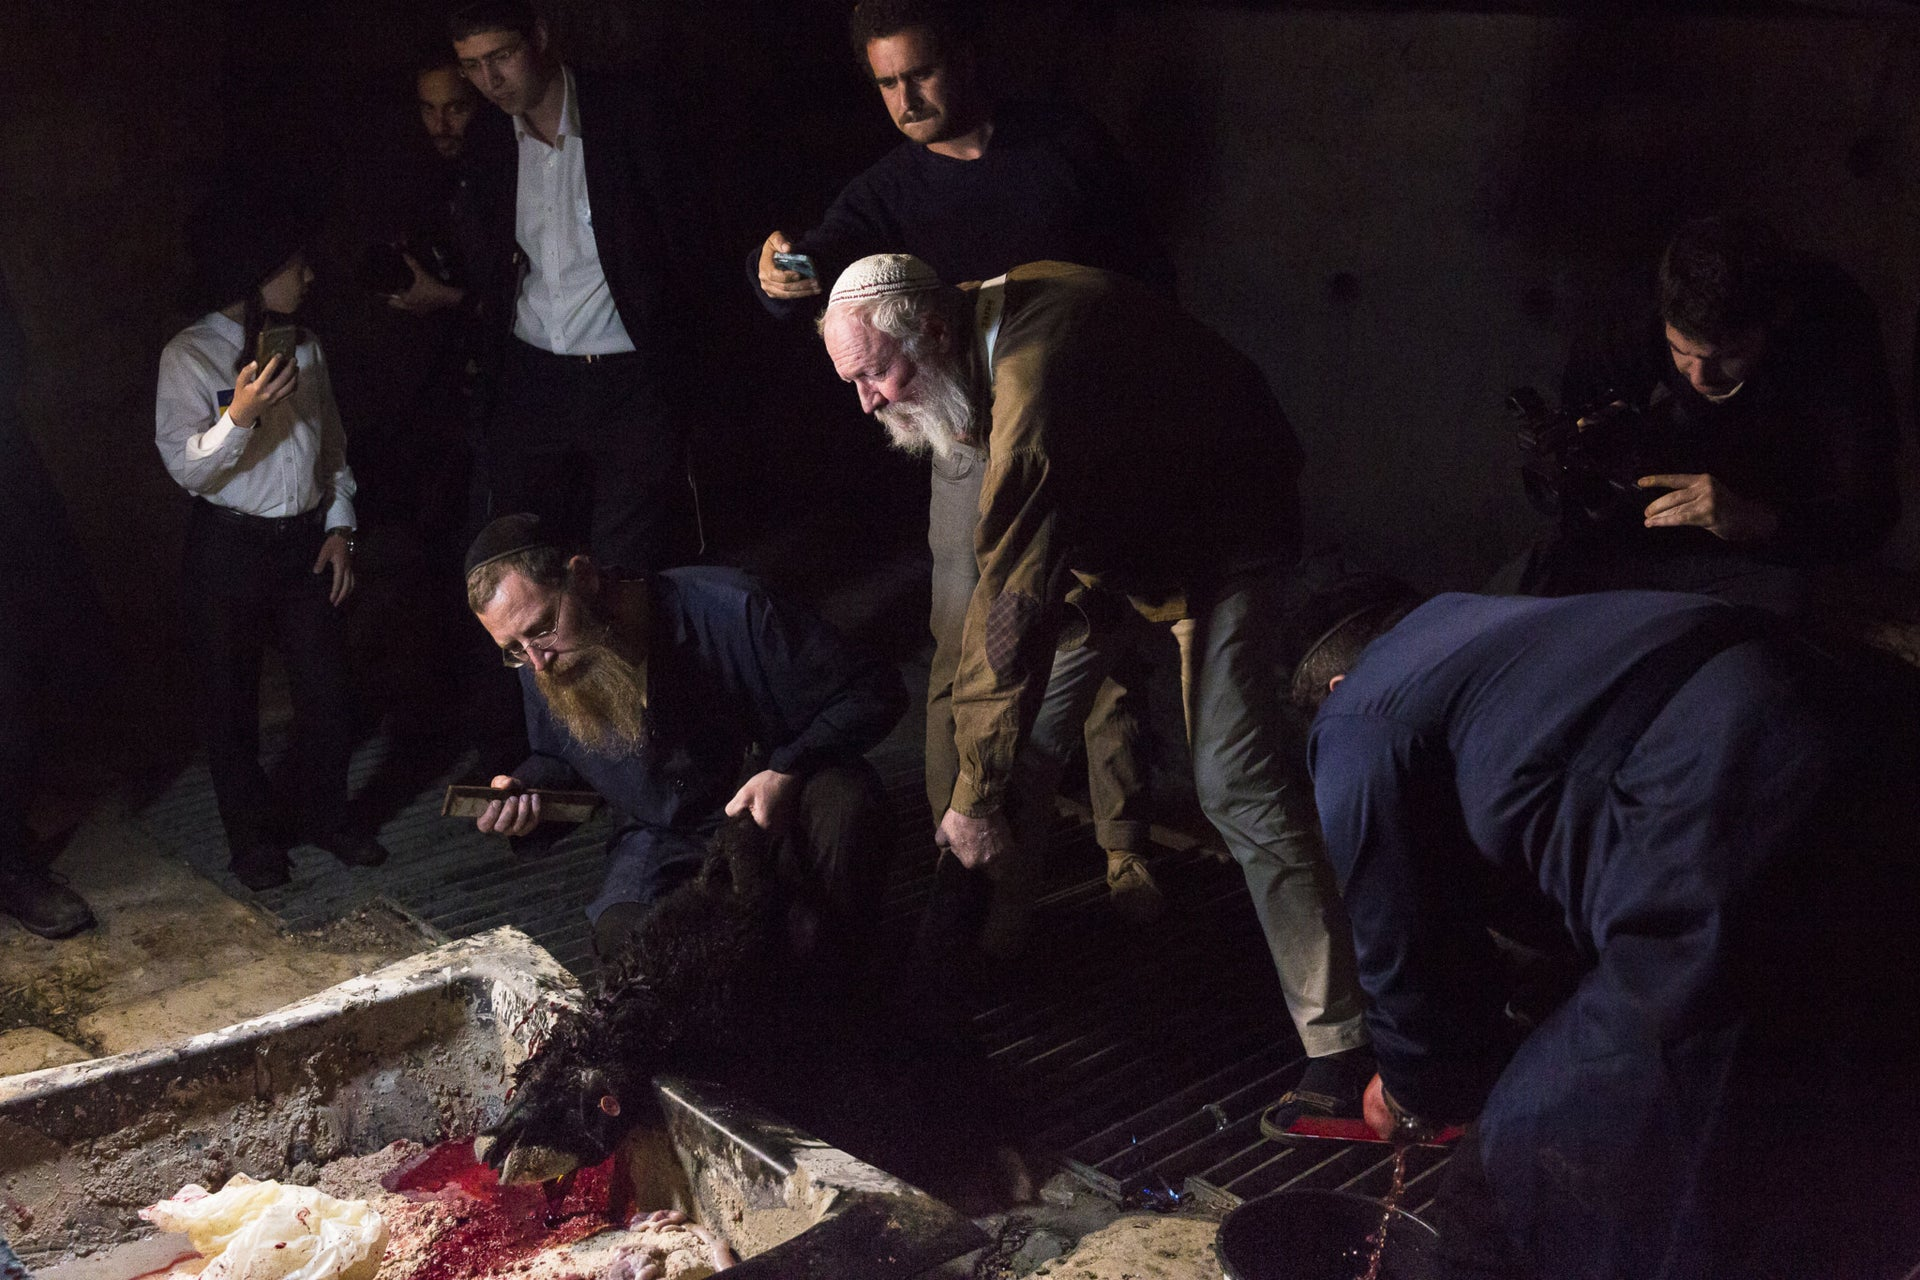 Members of the Temple Movement slaughter a lamb.